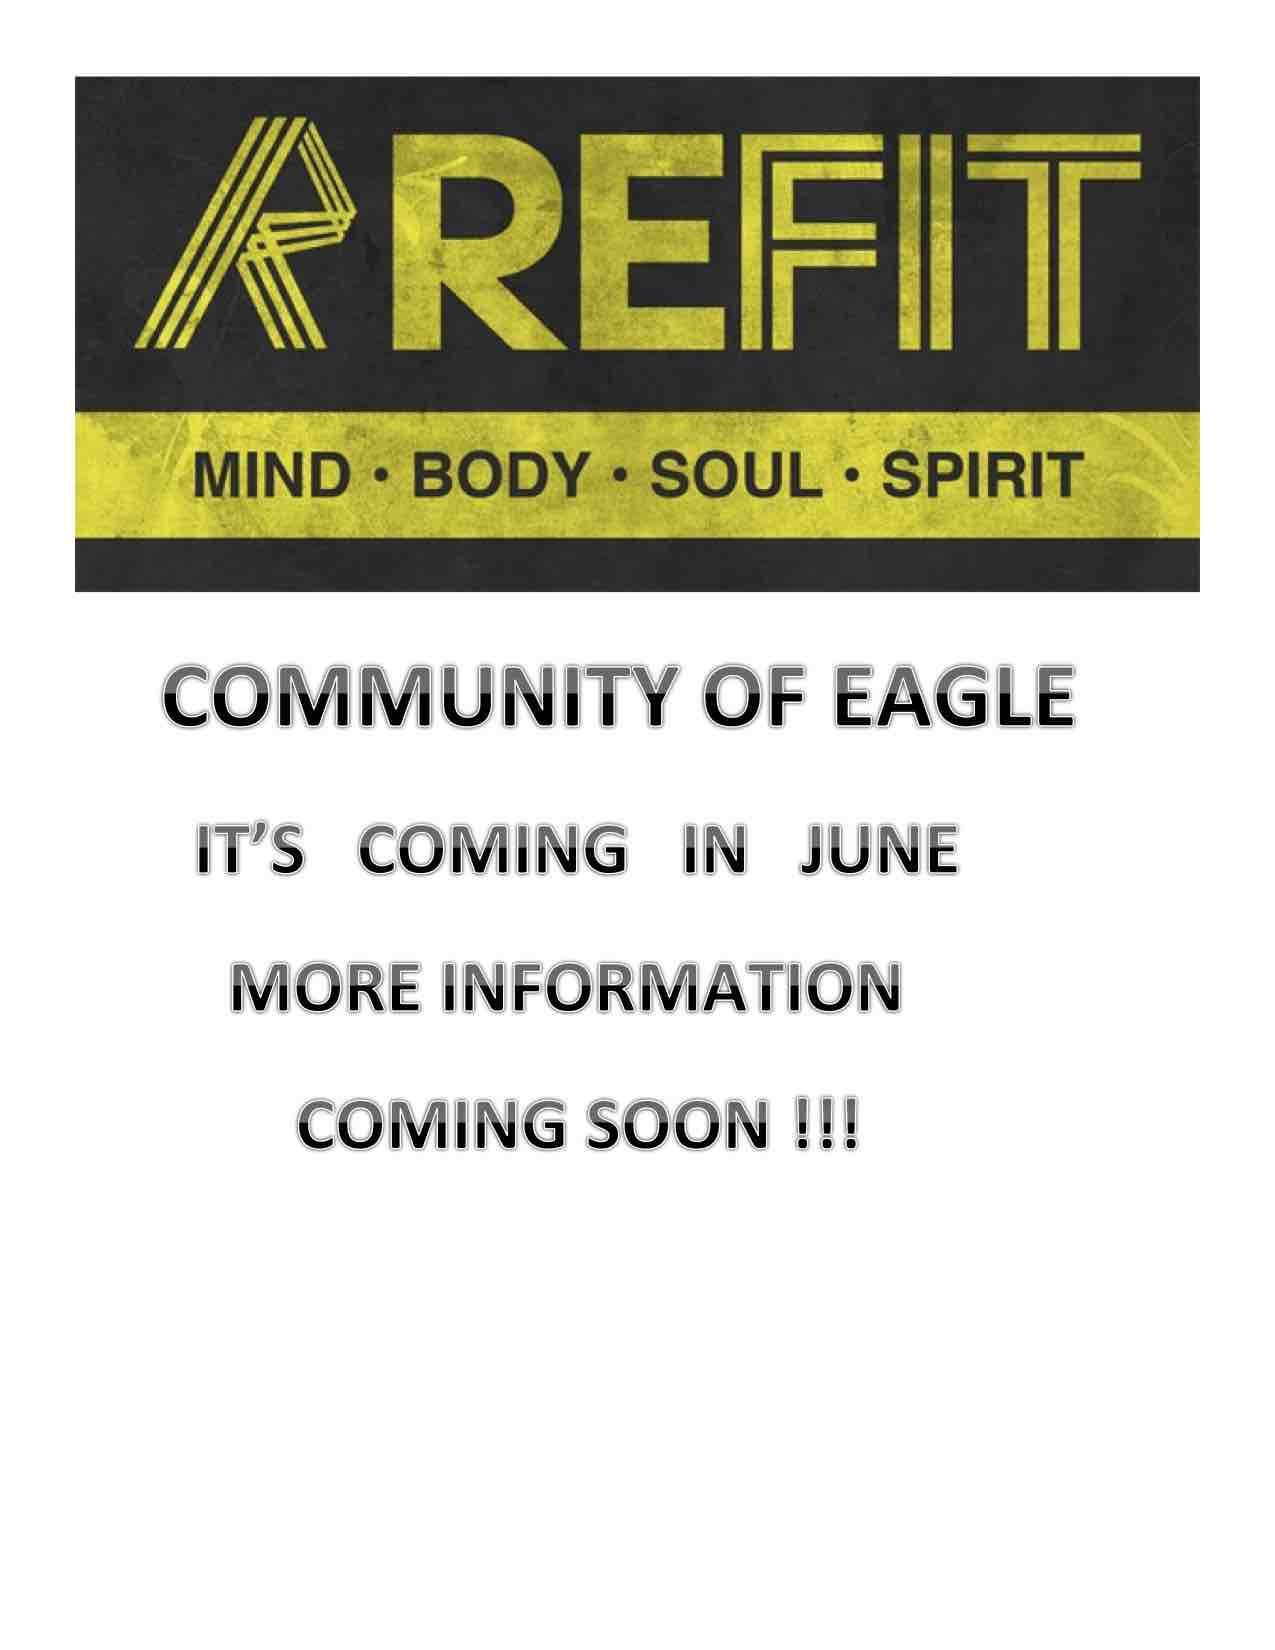 COMMUNITY OF EAGLE REFIT notice